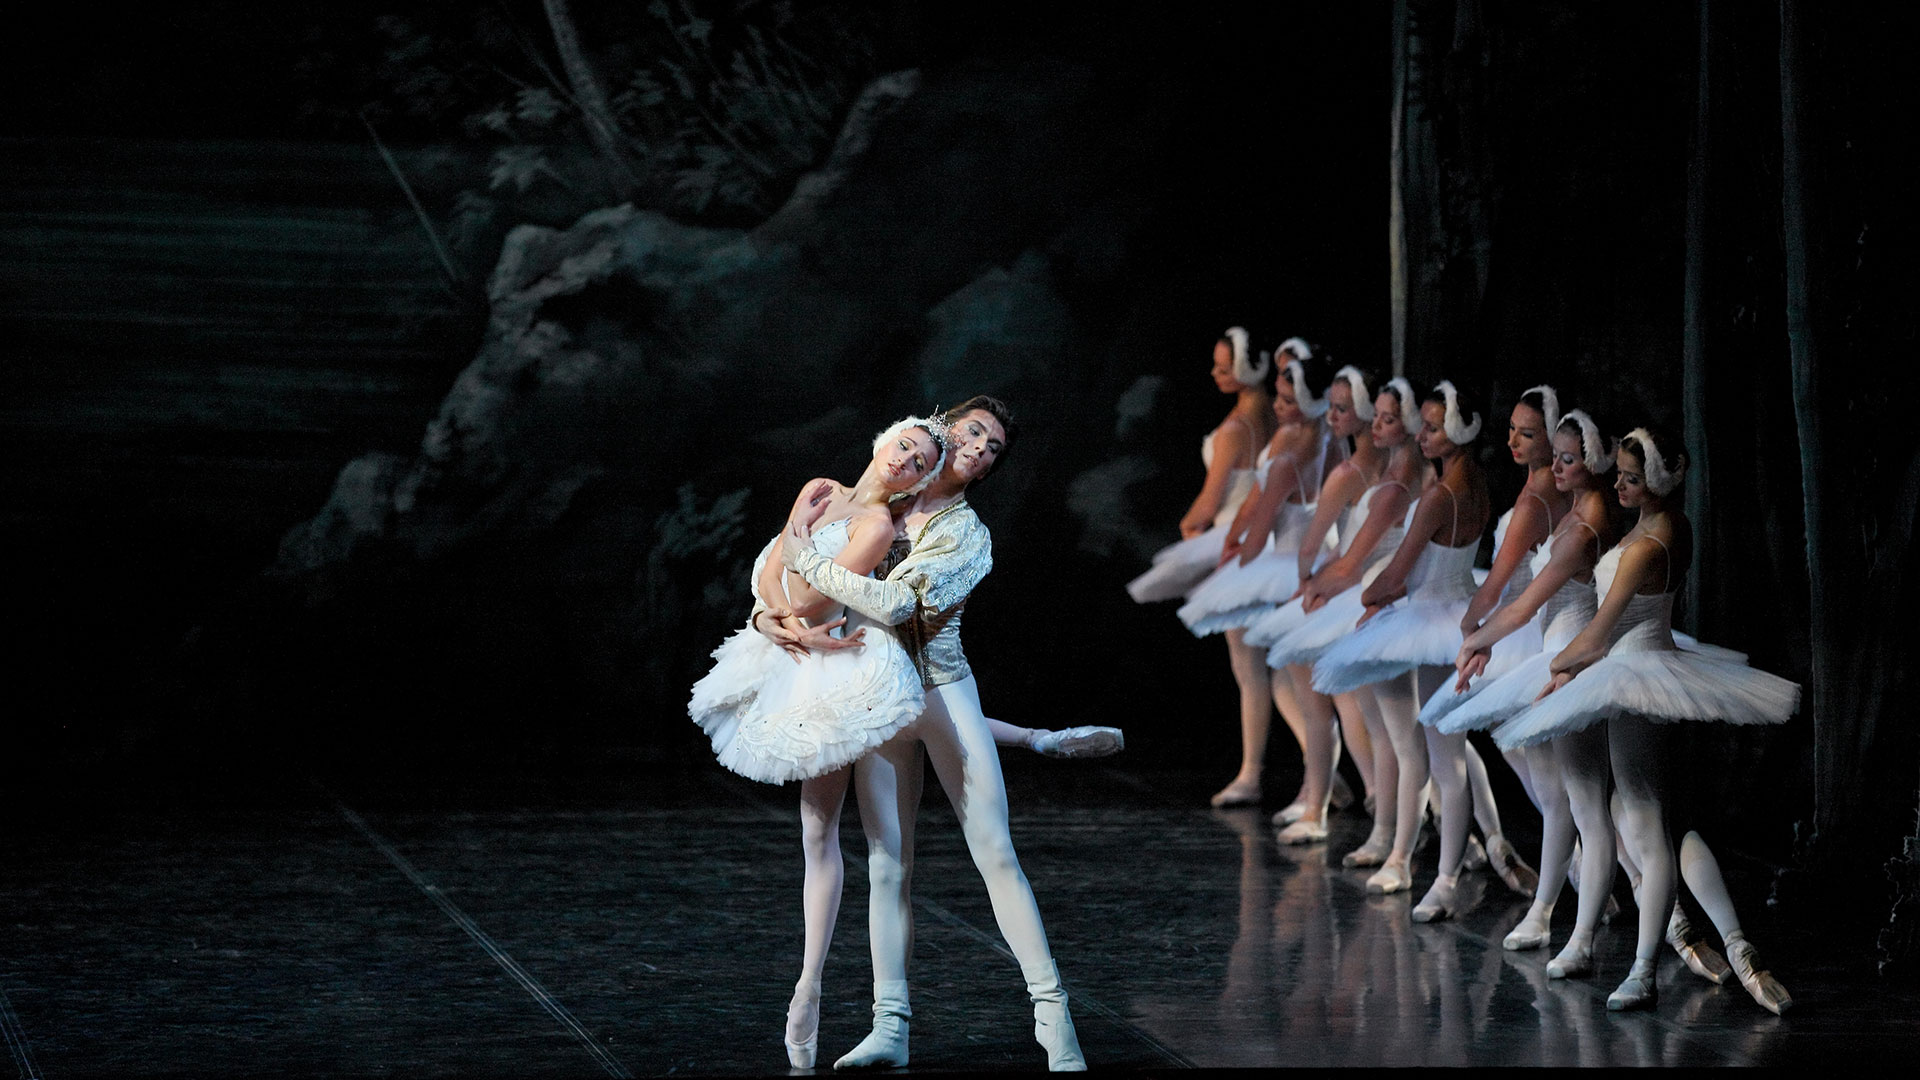 Swan Lake - pair of dancers in an artistic figure during performance with row of dancers in the background